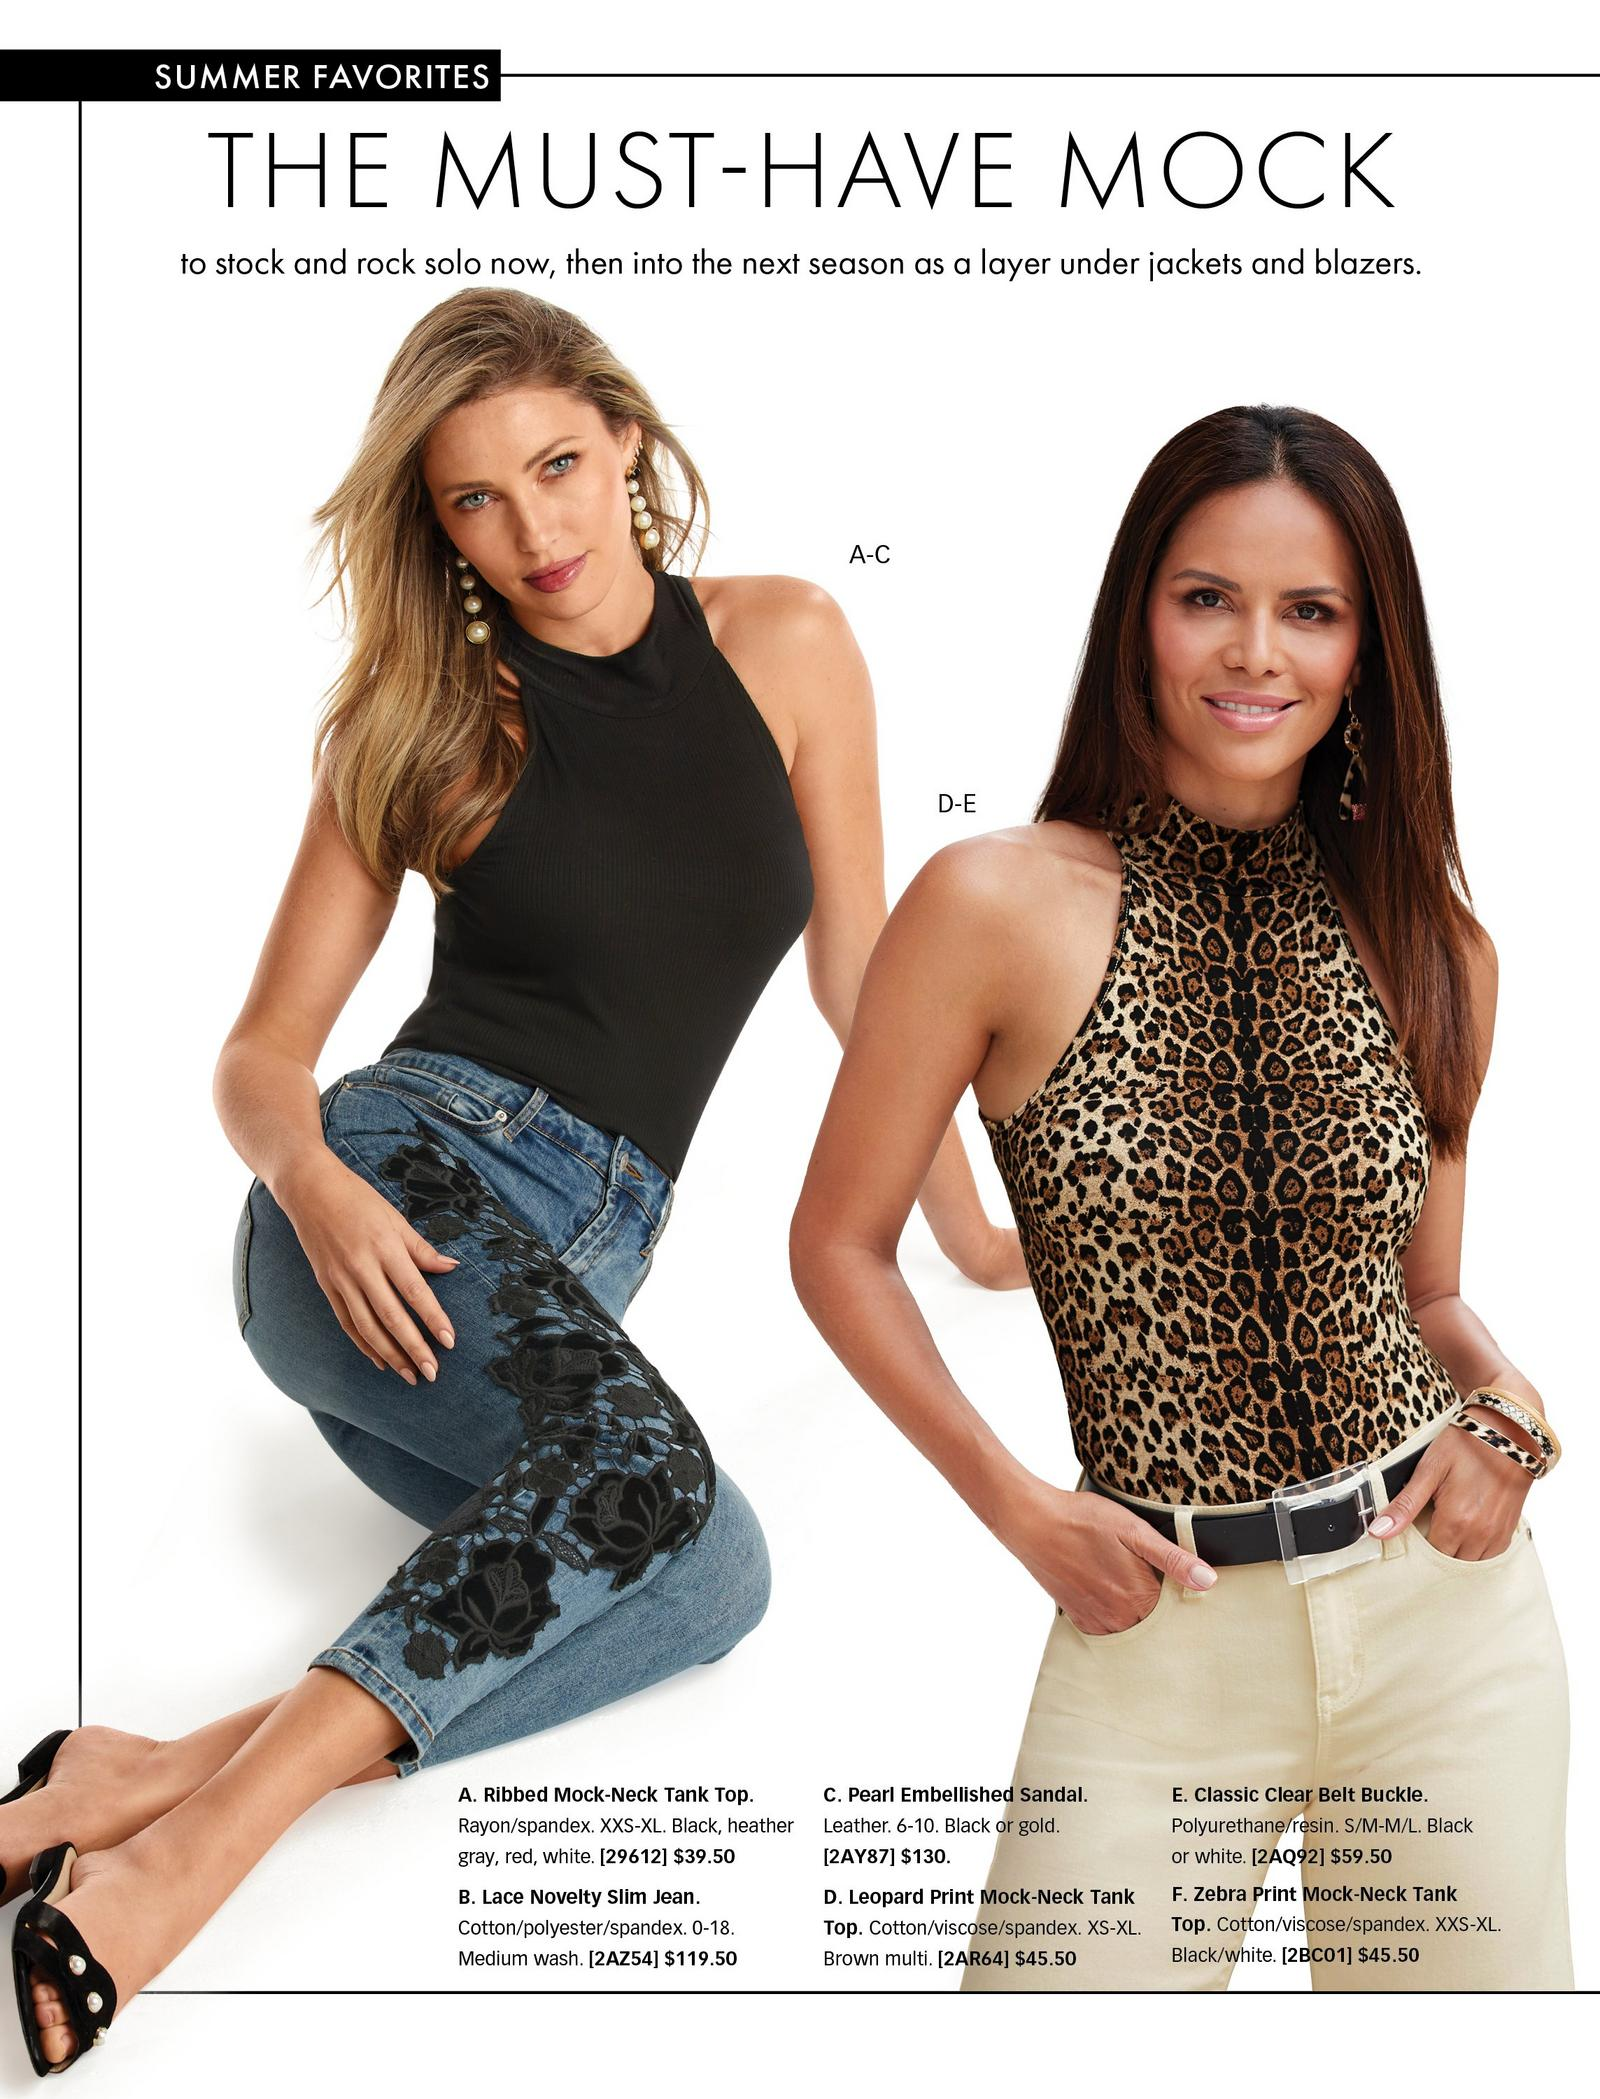 left model wearing a black mock-neck sleeveless top and jeans with black lace embroidery. right model wearing a leopard print mock-neck sleeveless top, black belt, and off-white pants.